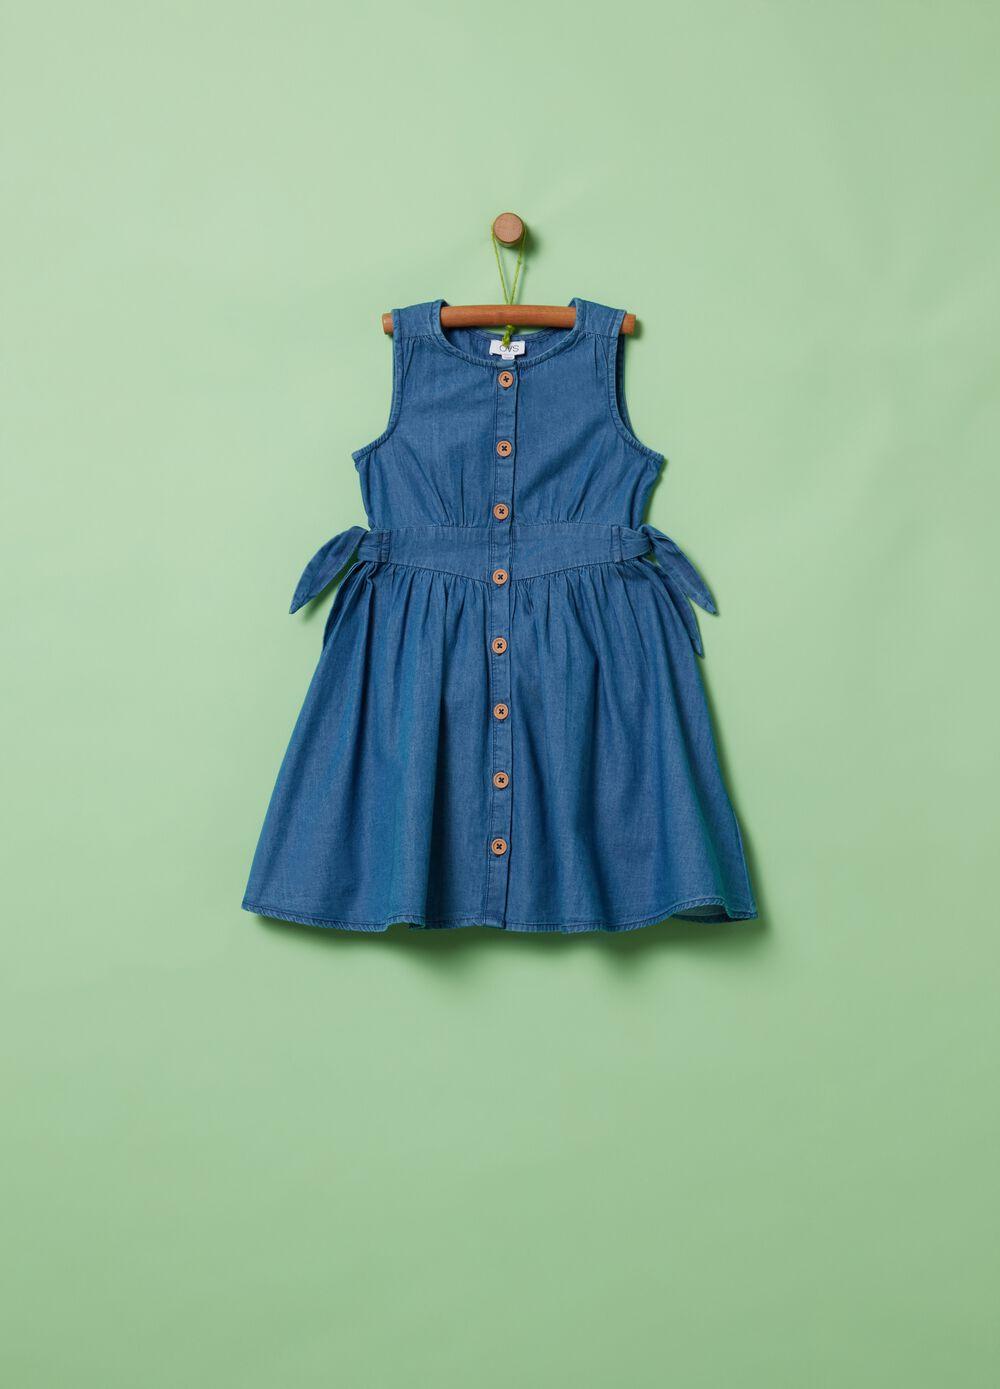 Denim-effect dress with bows